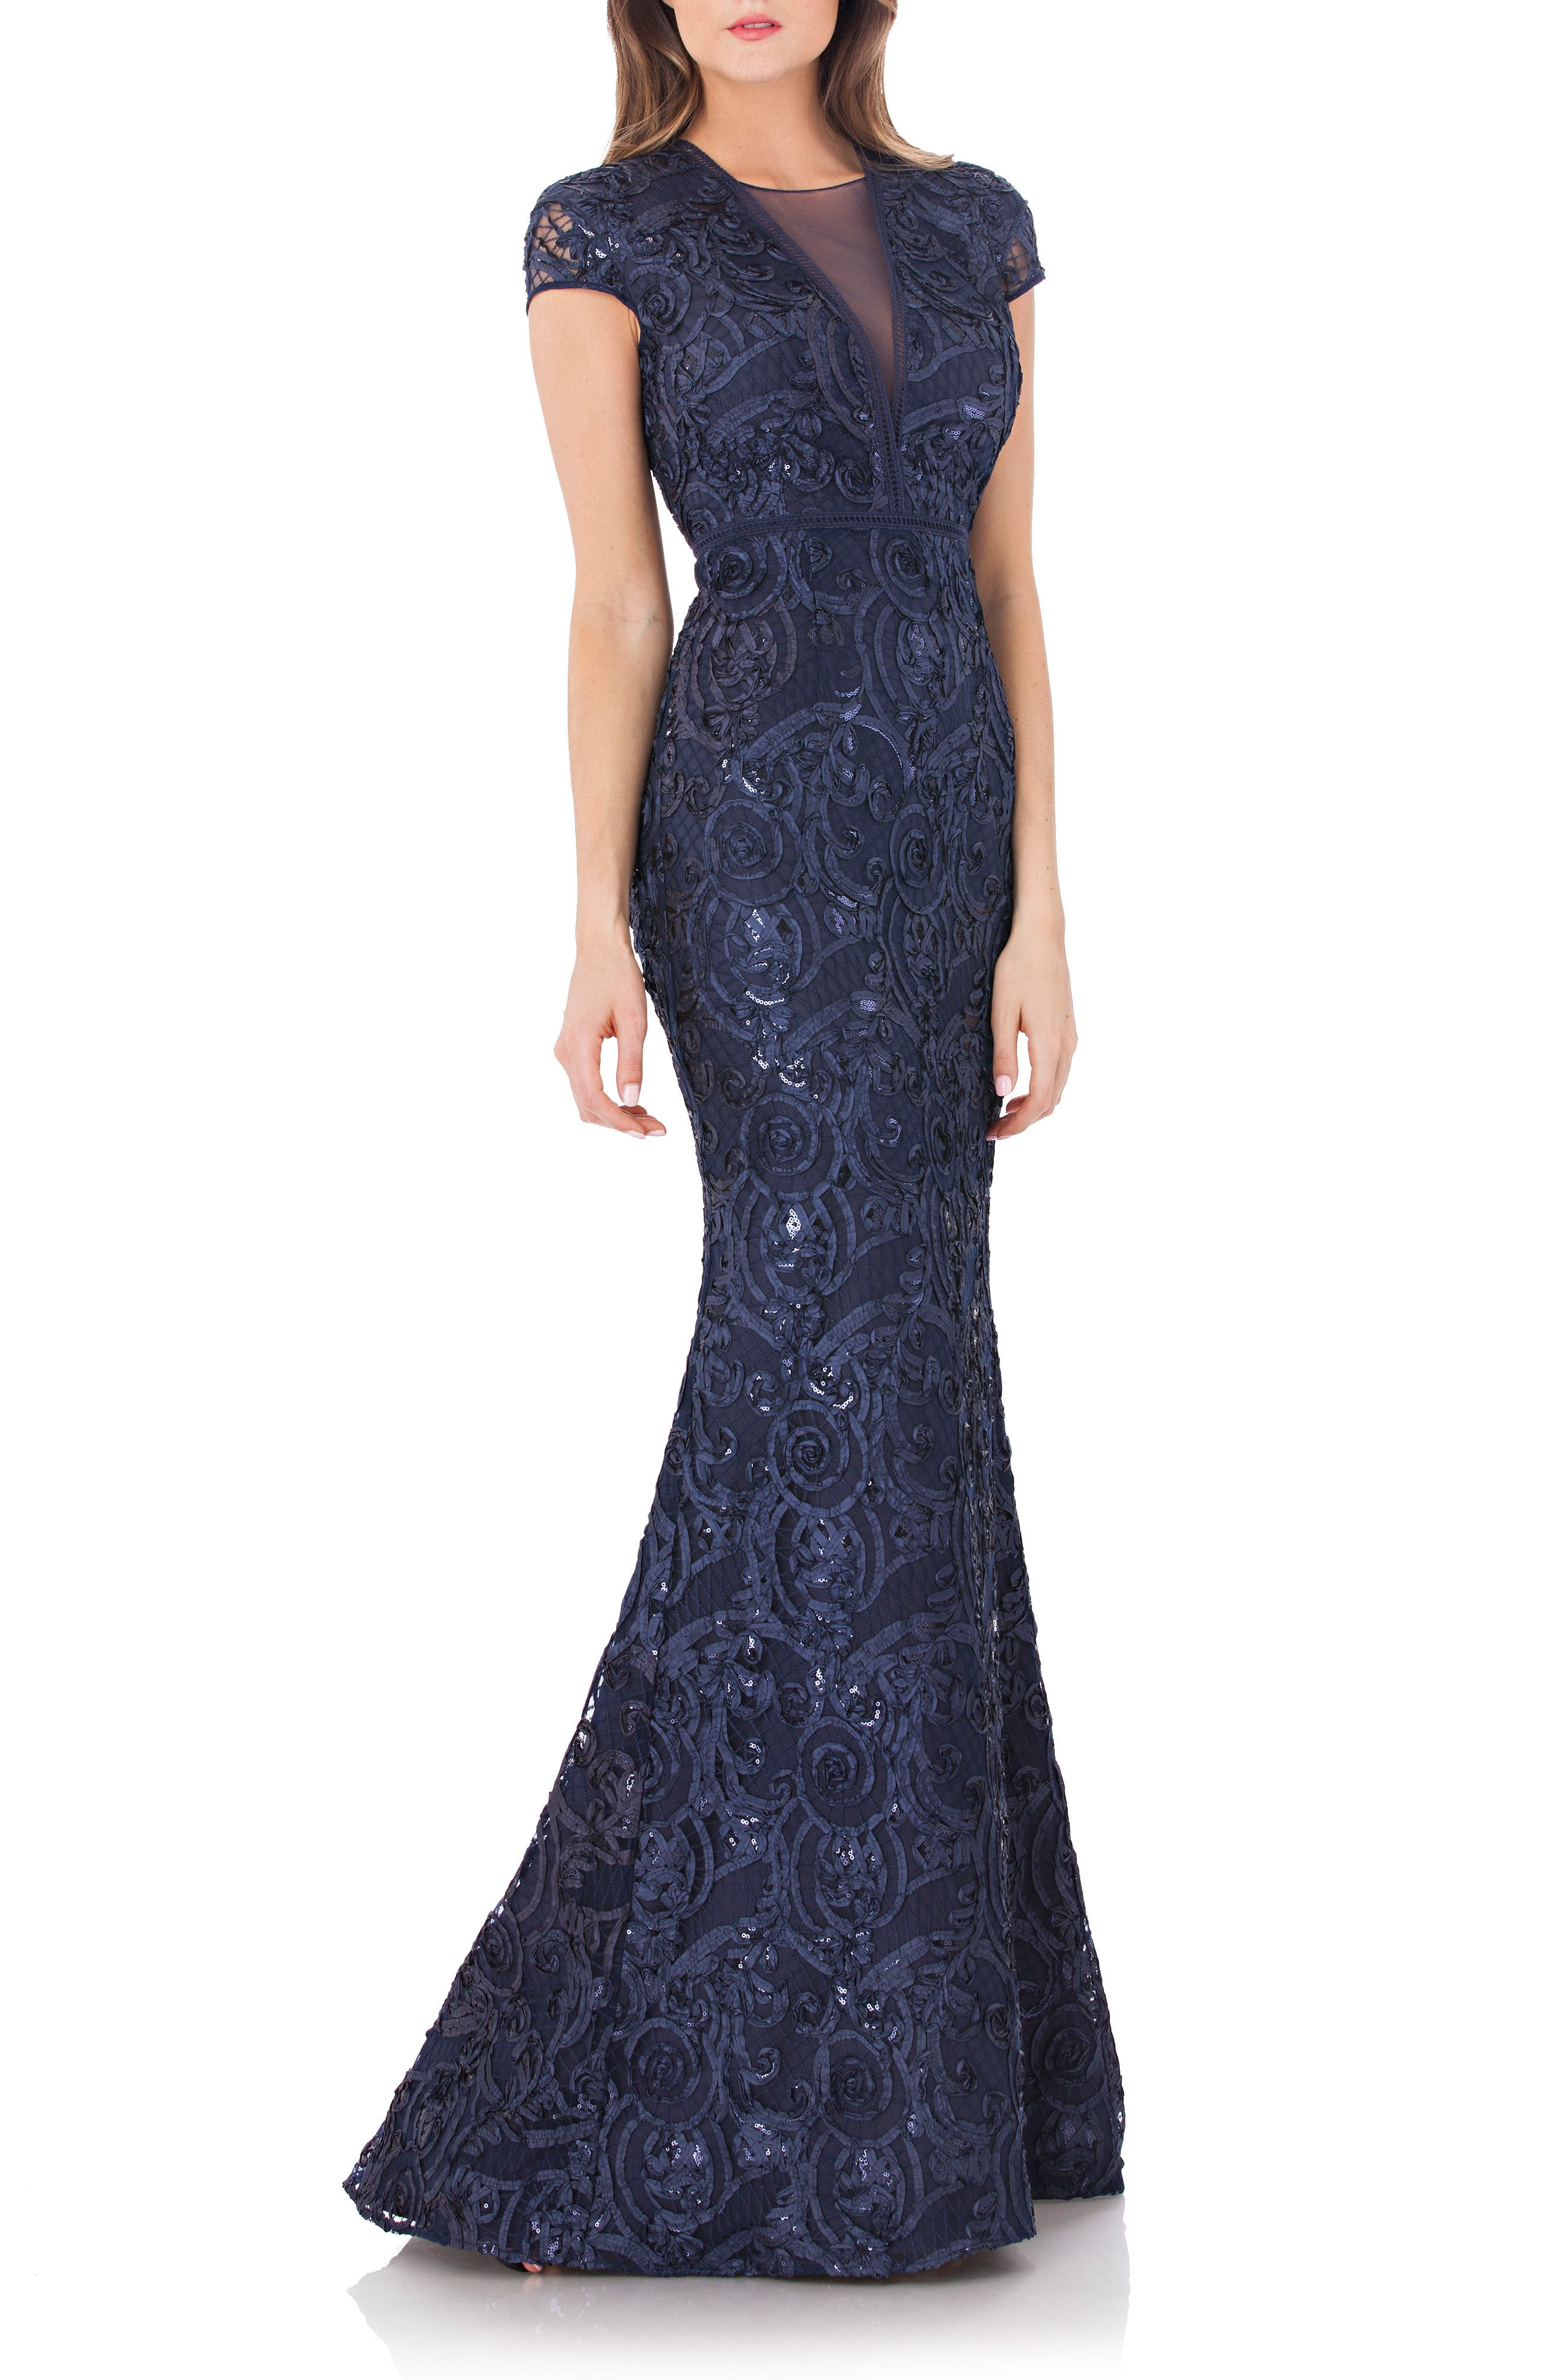 Main Image - Carmen Marc Valvo Infusion Embellished Soutache Mermaid Gown